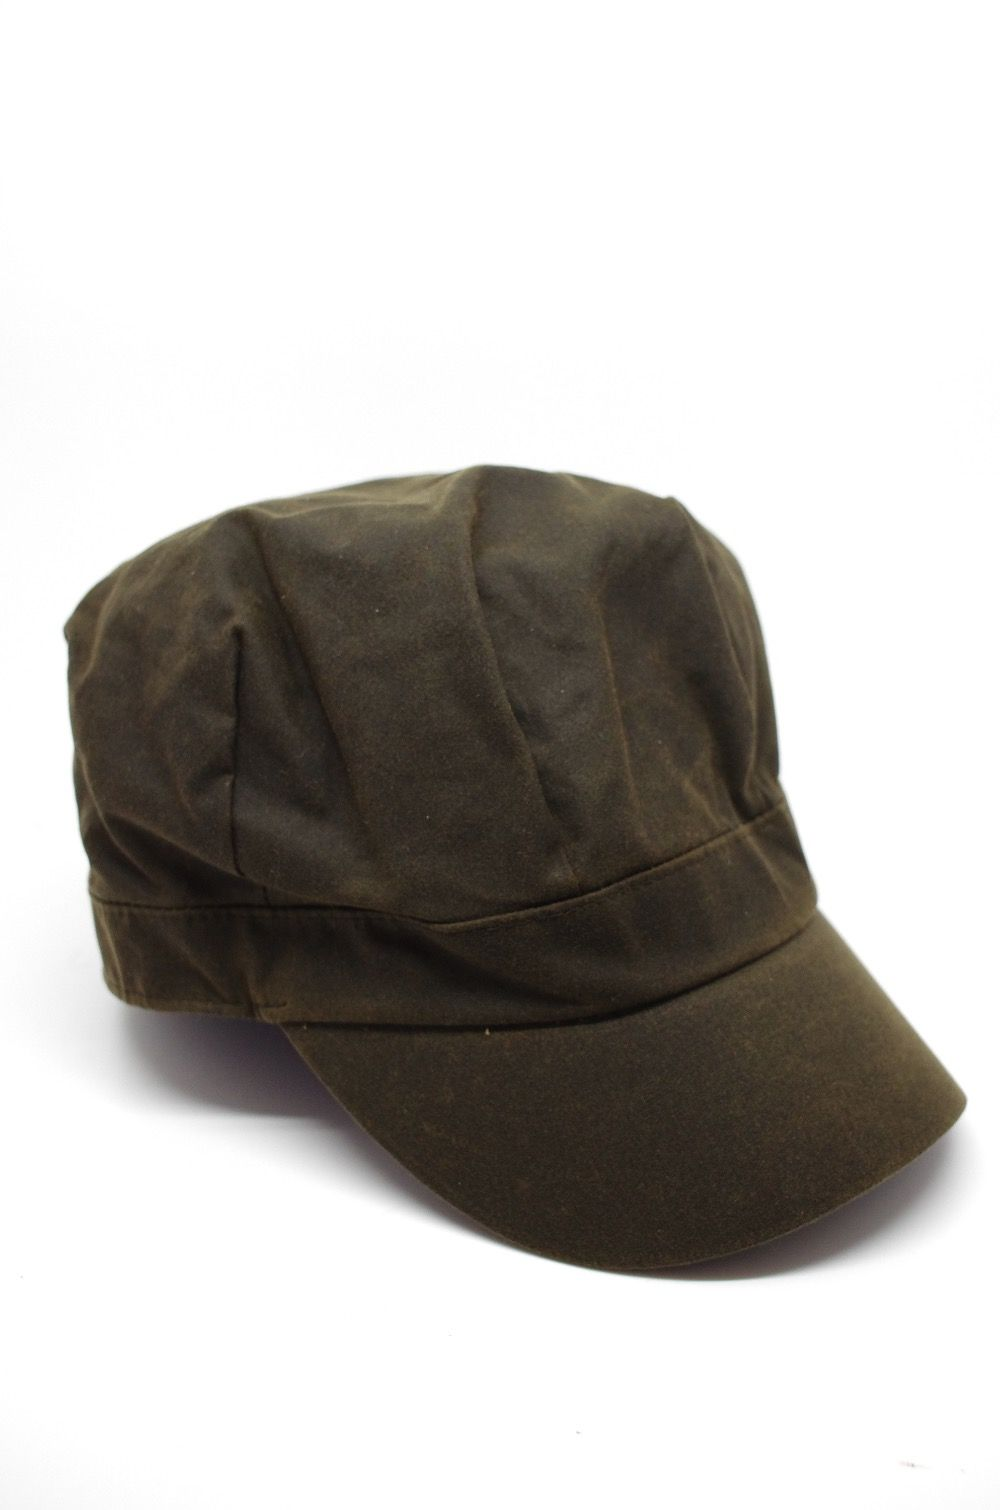 Barbour Ladies Waxed Baker Boy Hat in Olive